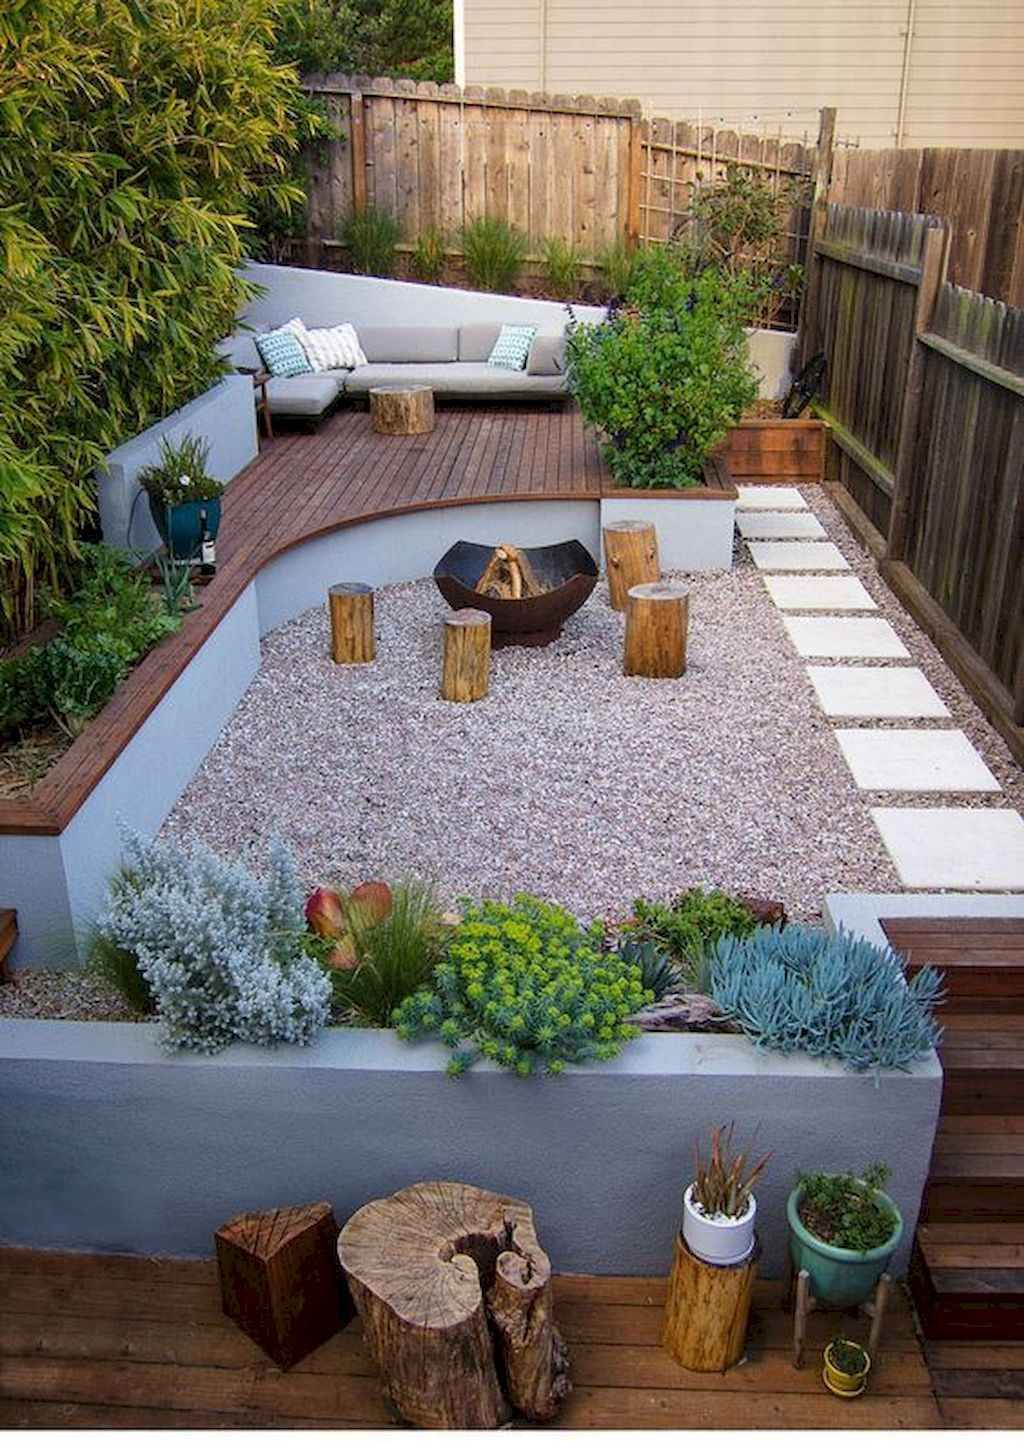 50 Cozy Backyard Seating Area Ideas | Small backyard ... on Back Garden Seating Area Ideas  id=66828